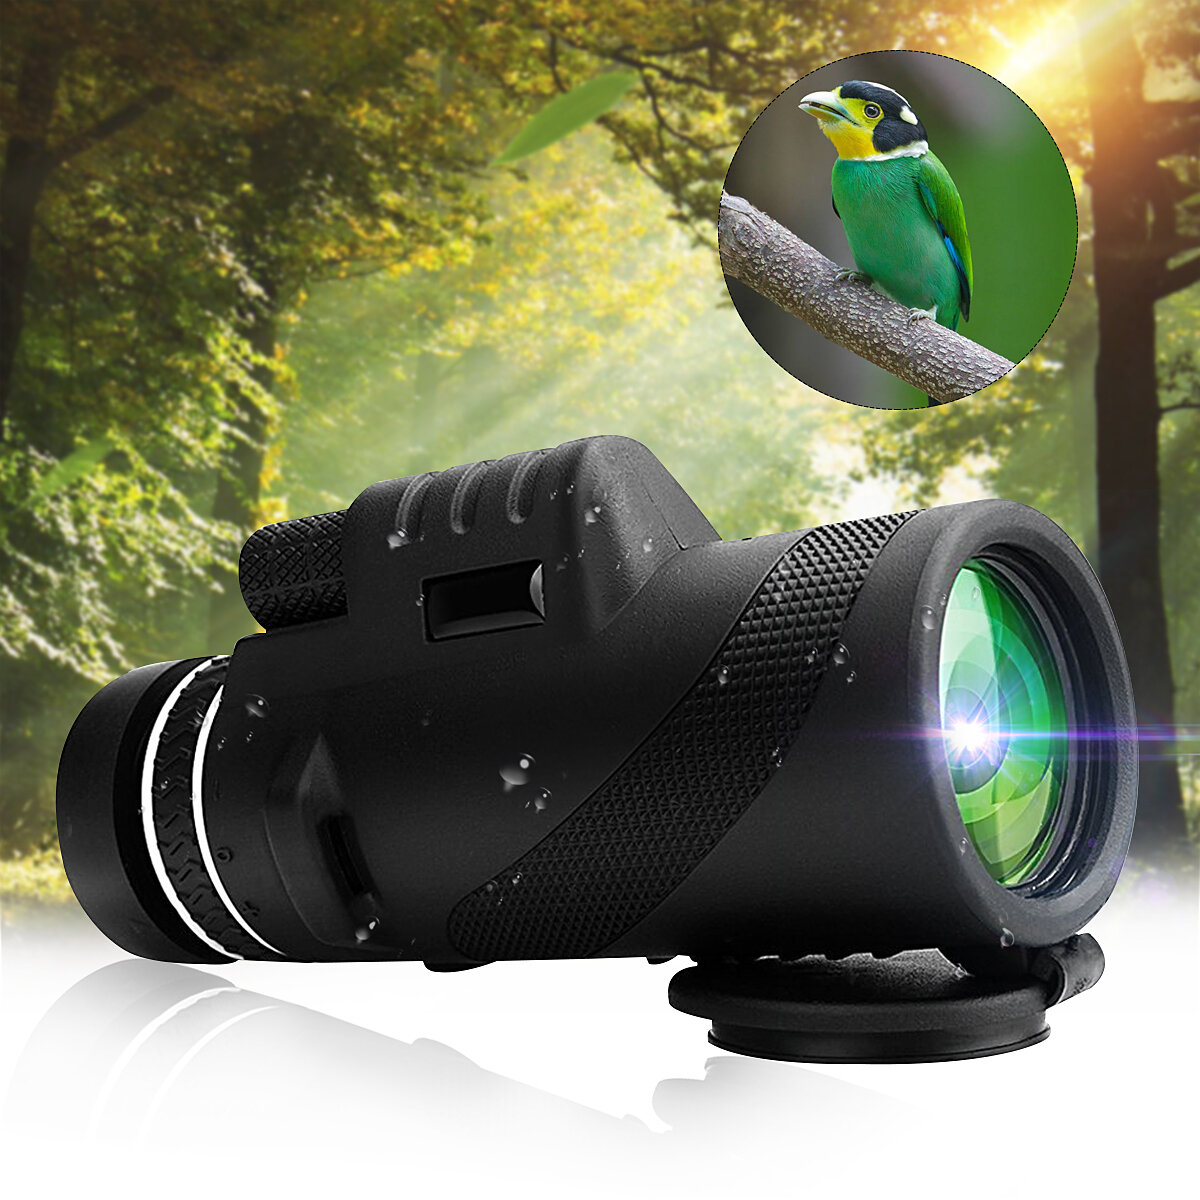 IPRee� 40x60 Monocular HD Optic BAK4 Day Night Vision Telescope 1500m/9500m Outdoor Camping Hiking